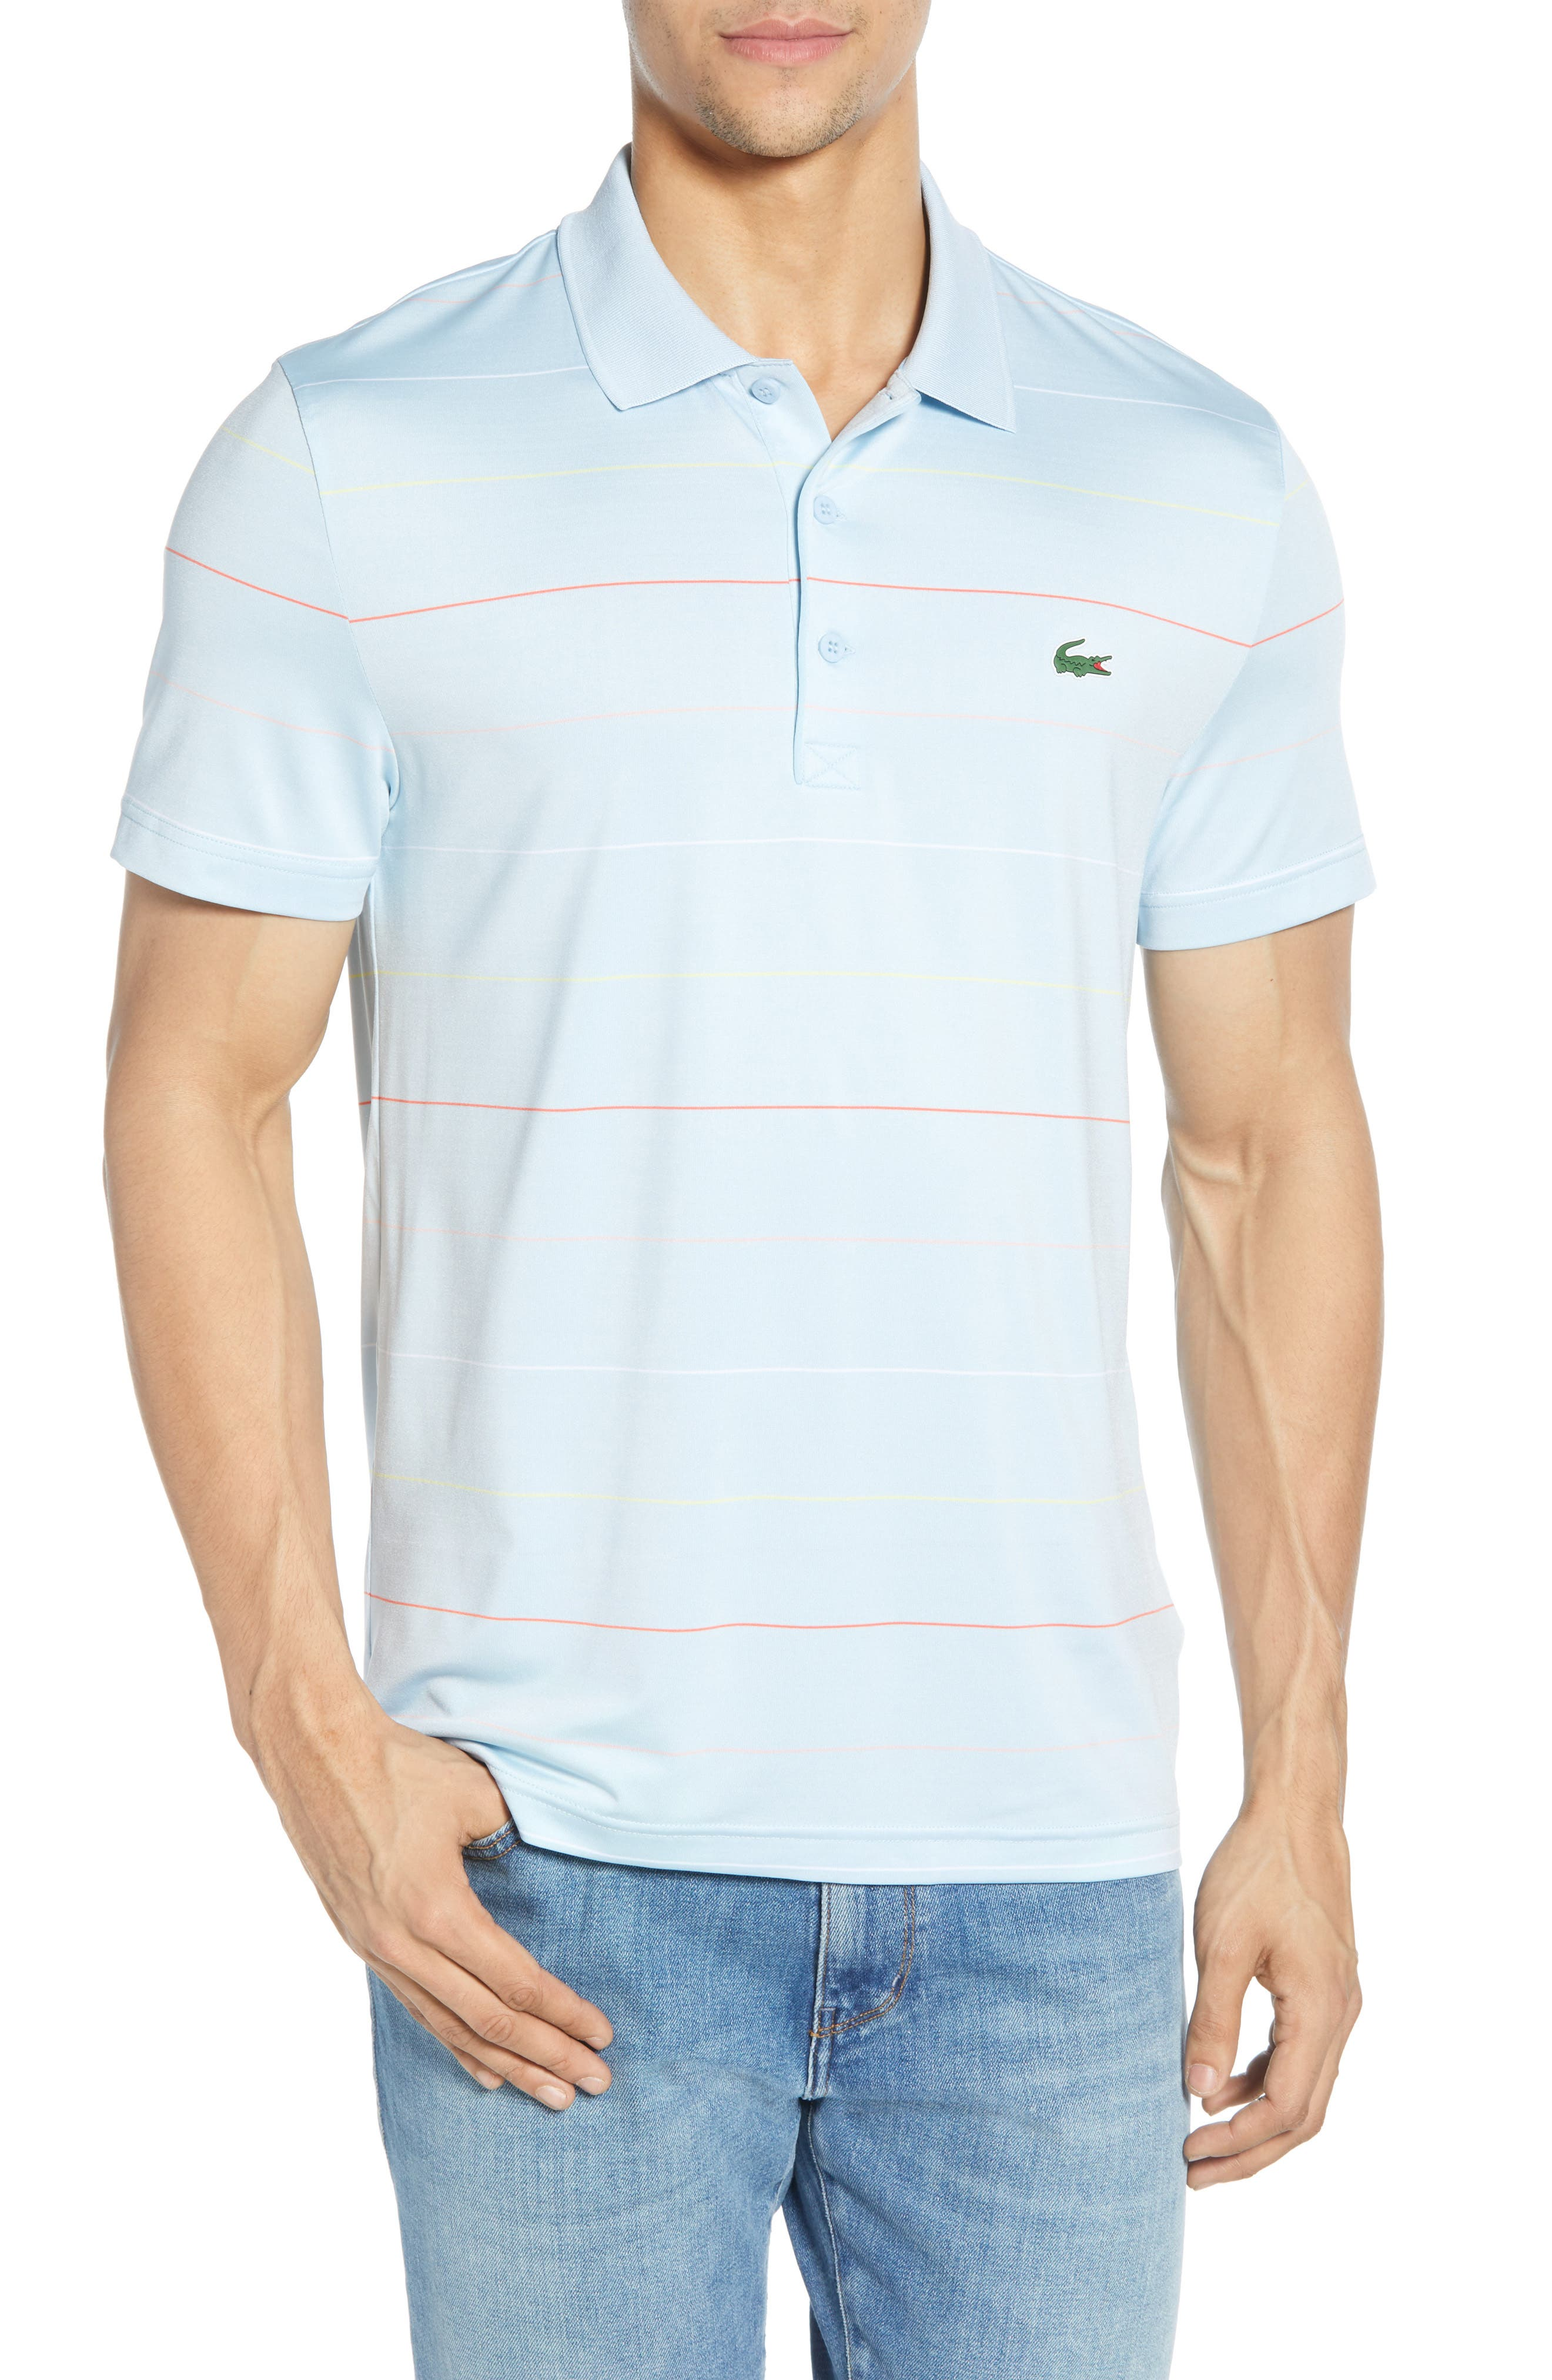 LACOSTE, Ultra Dry Regular Fit Tech Polo, Main thumbnail 1, color, DREAM BLUE/ MANGO